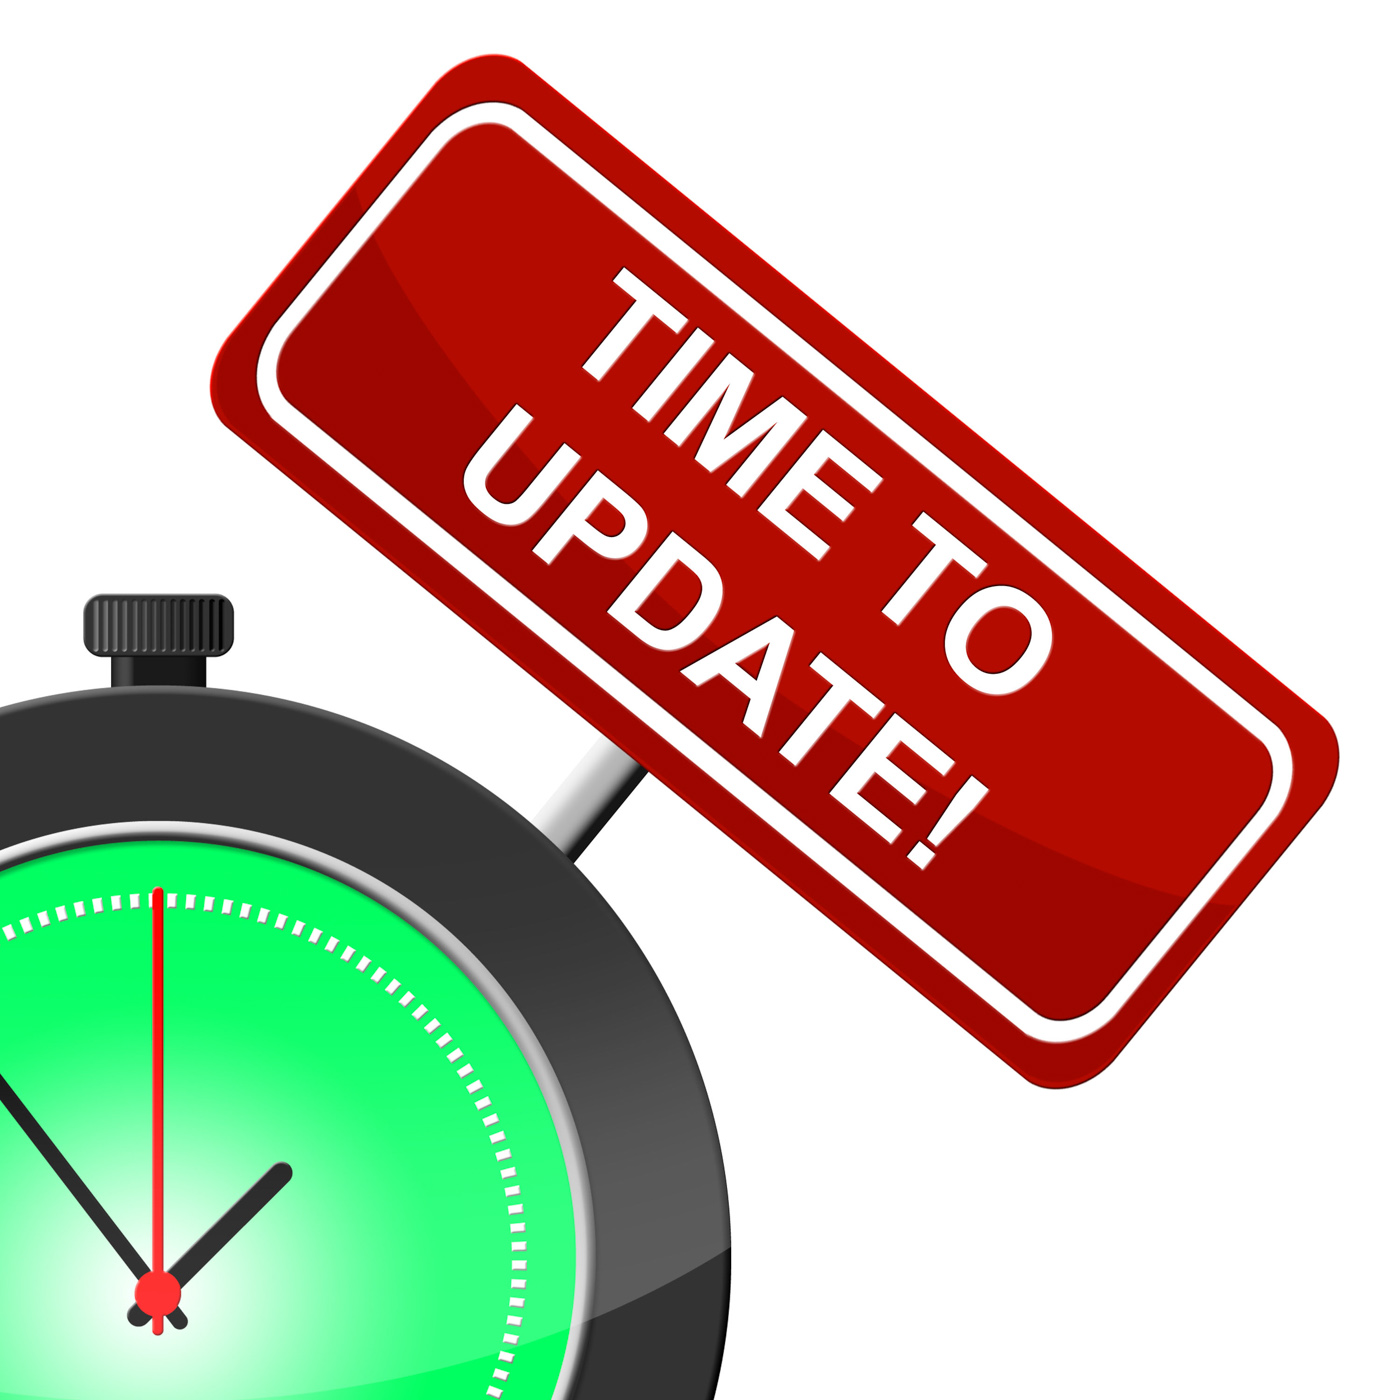 Time to update means modernize improved and reform photo